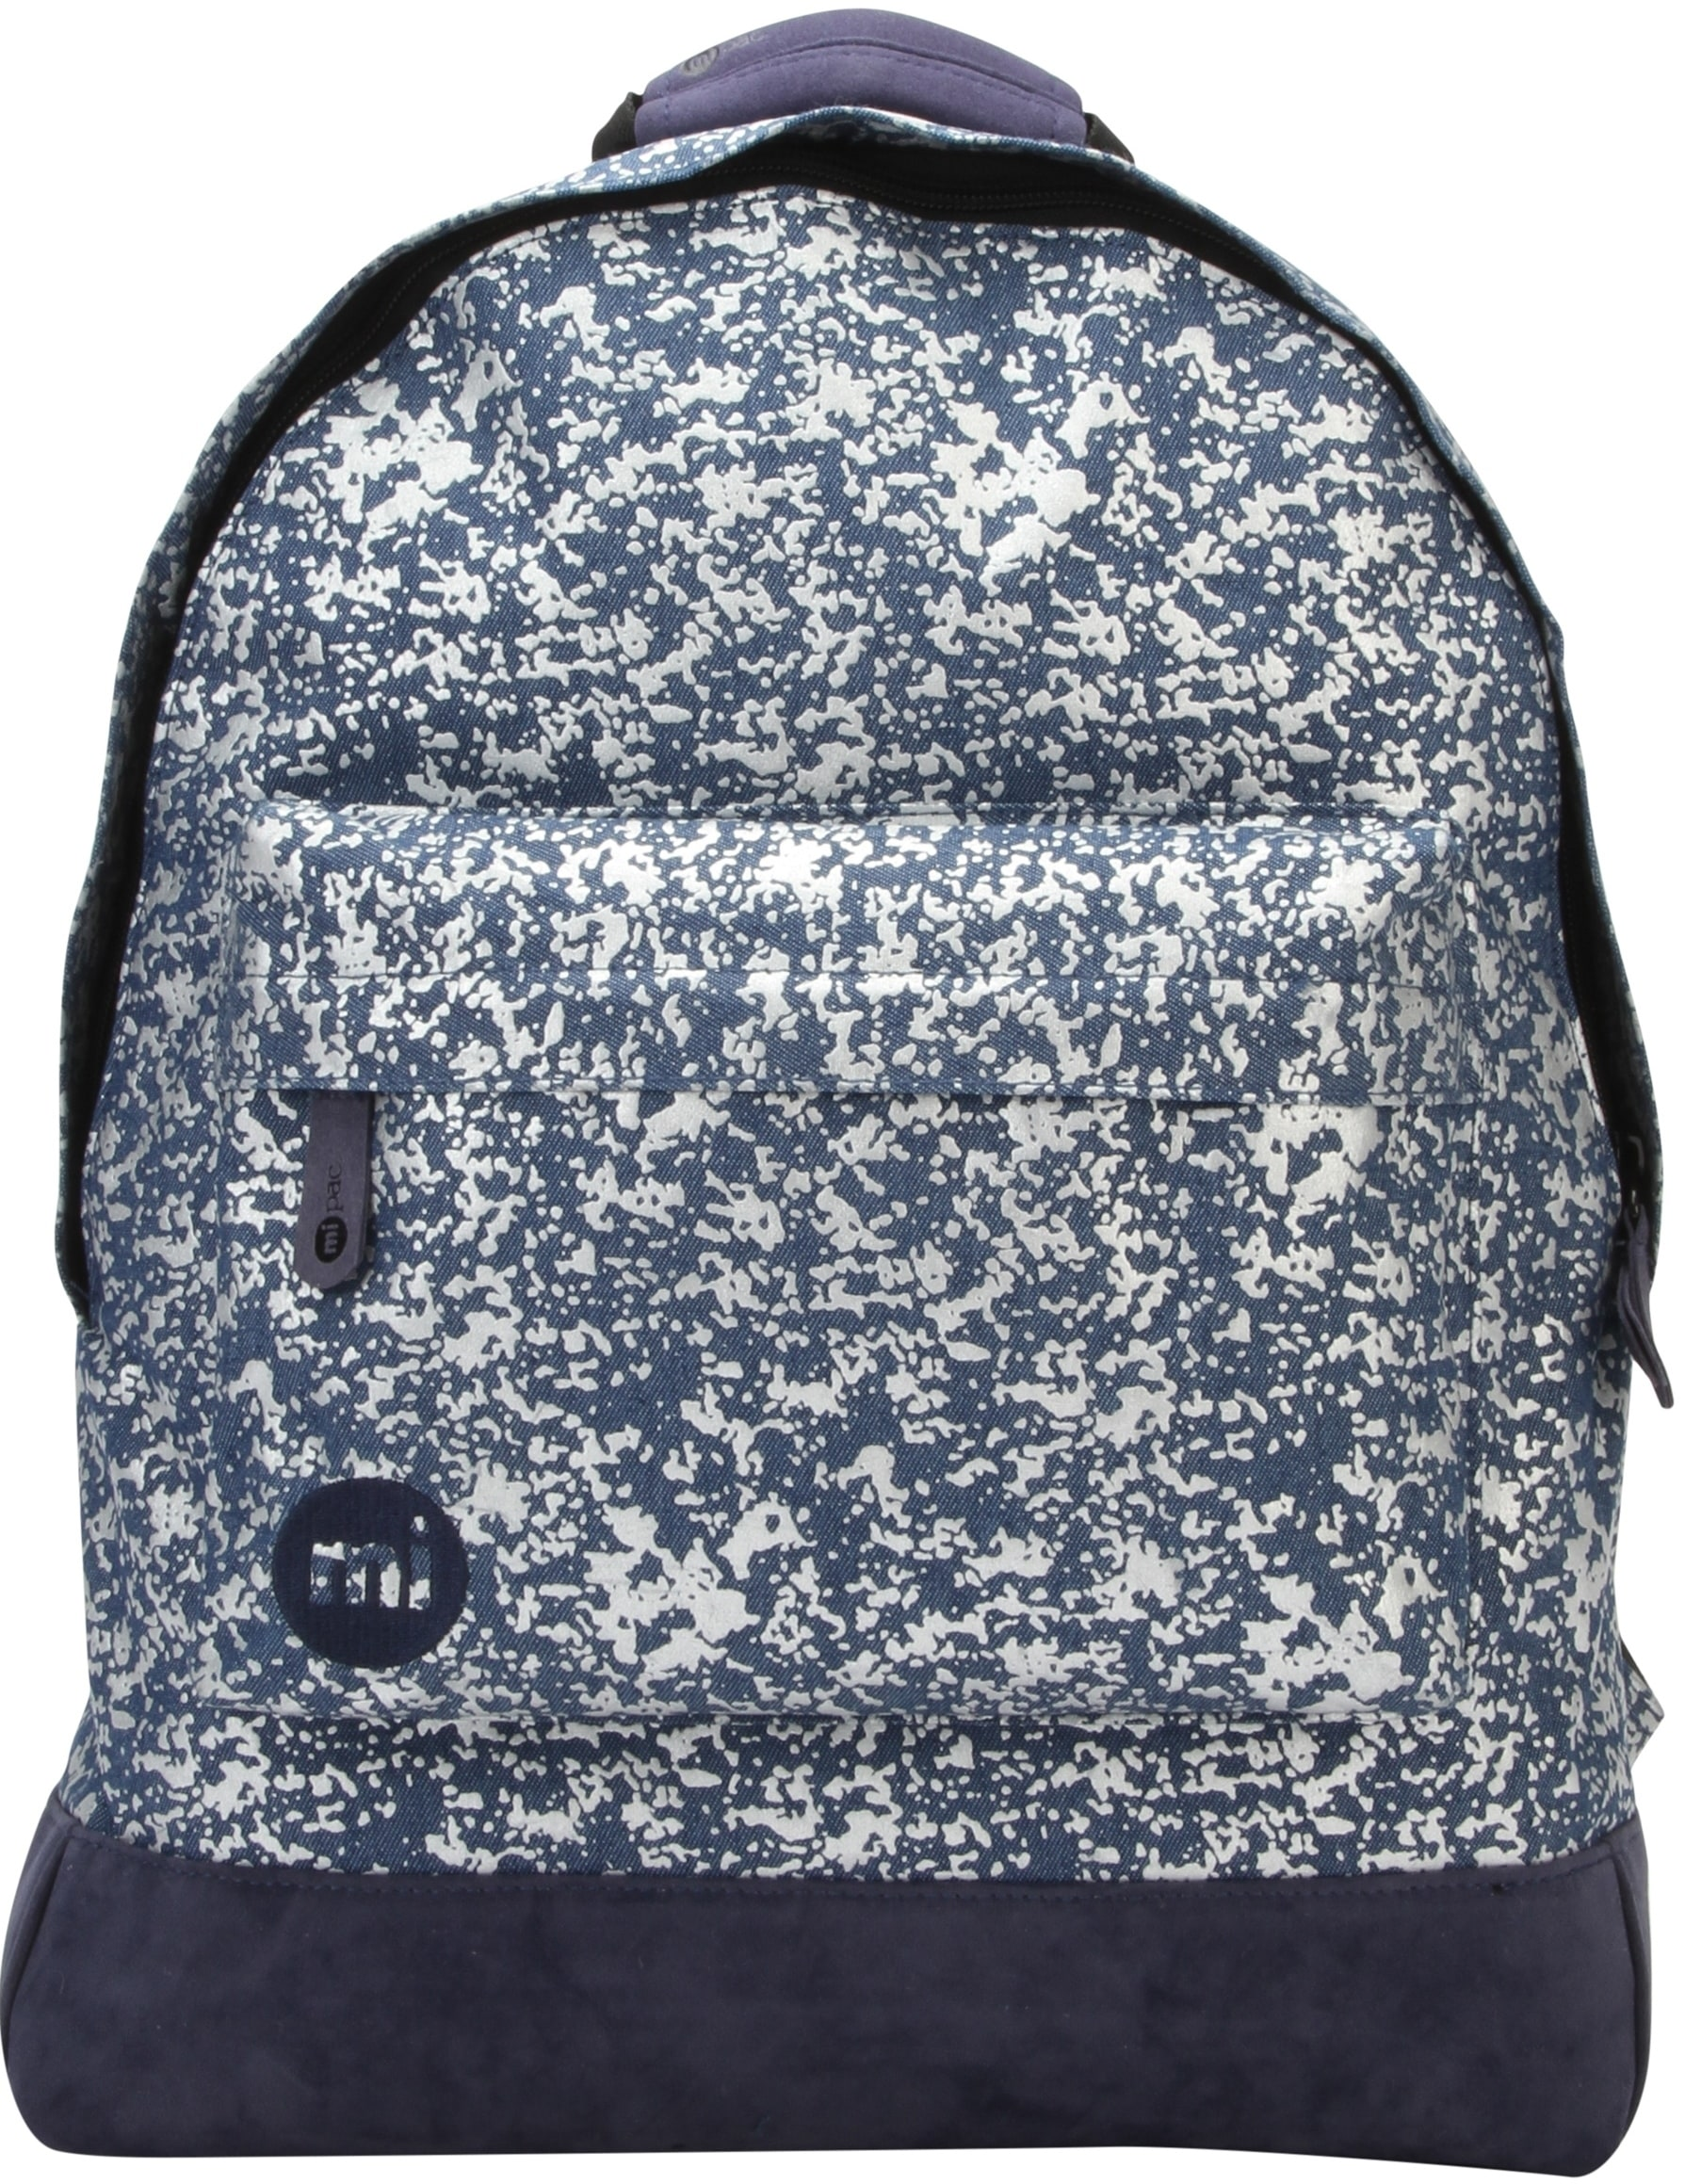 MiPac Denim Splatter Backpack  IndigoSilver